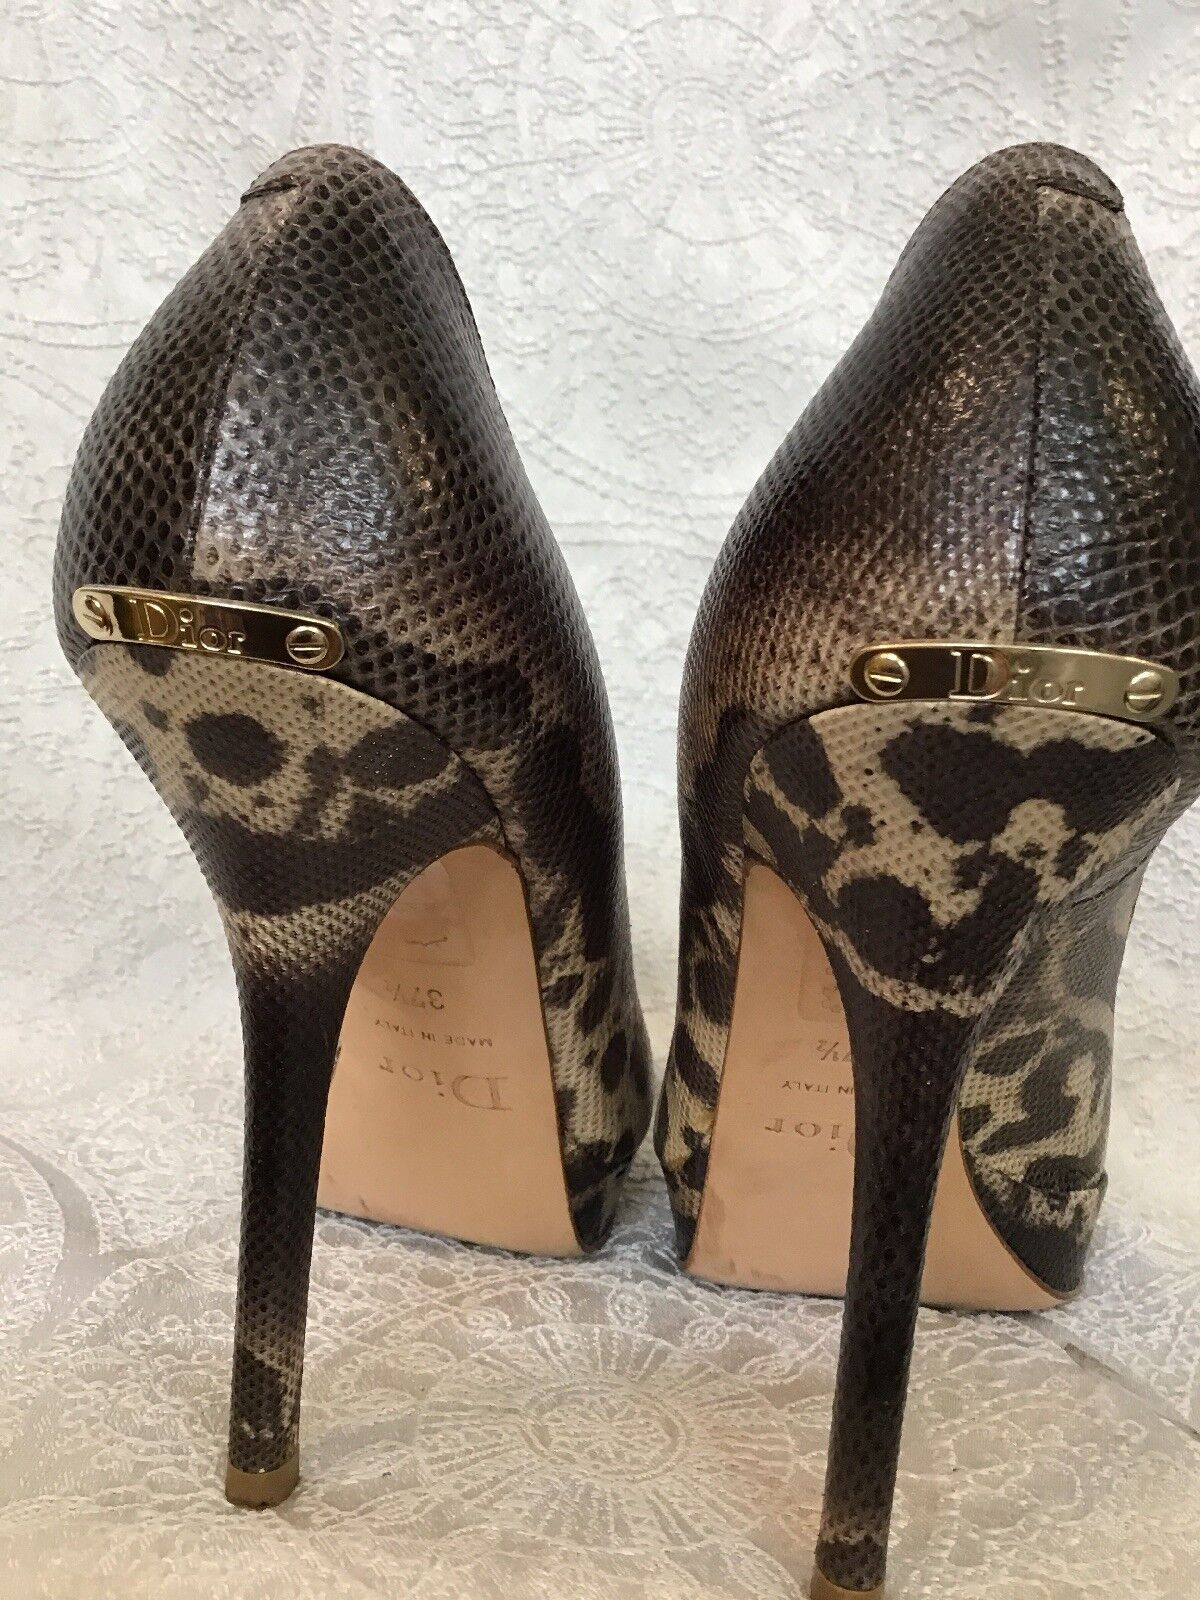 Christian Dior chaussures Water Snake Peep Toe Pump Front Front Front Platform Taille 37 1 2 873341